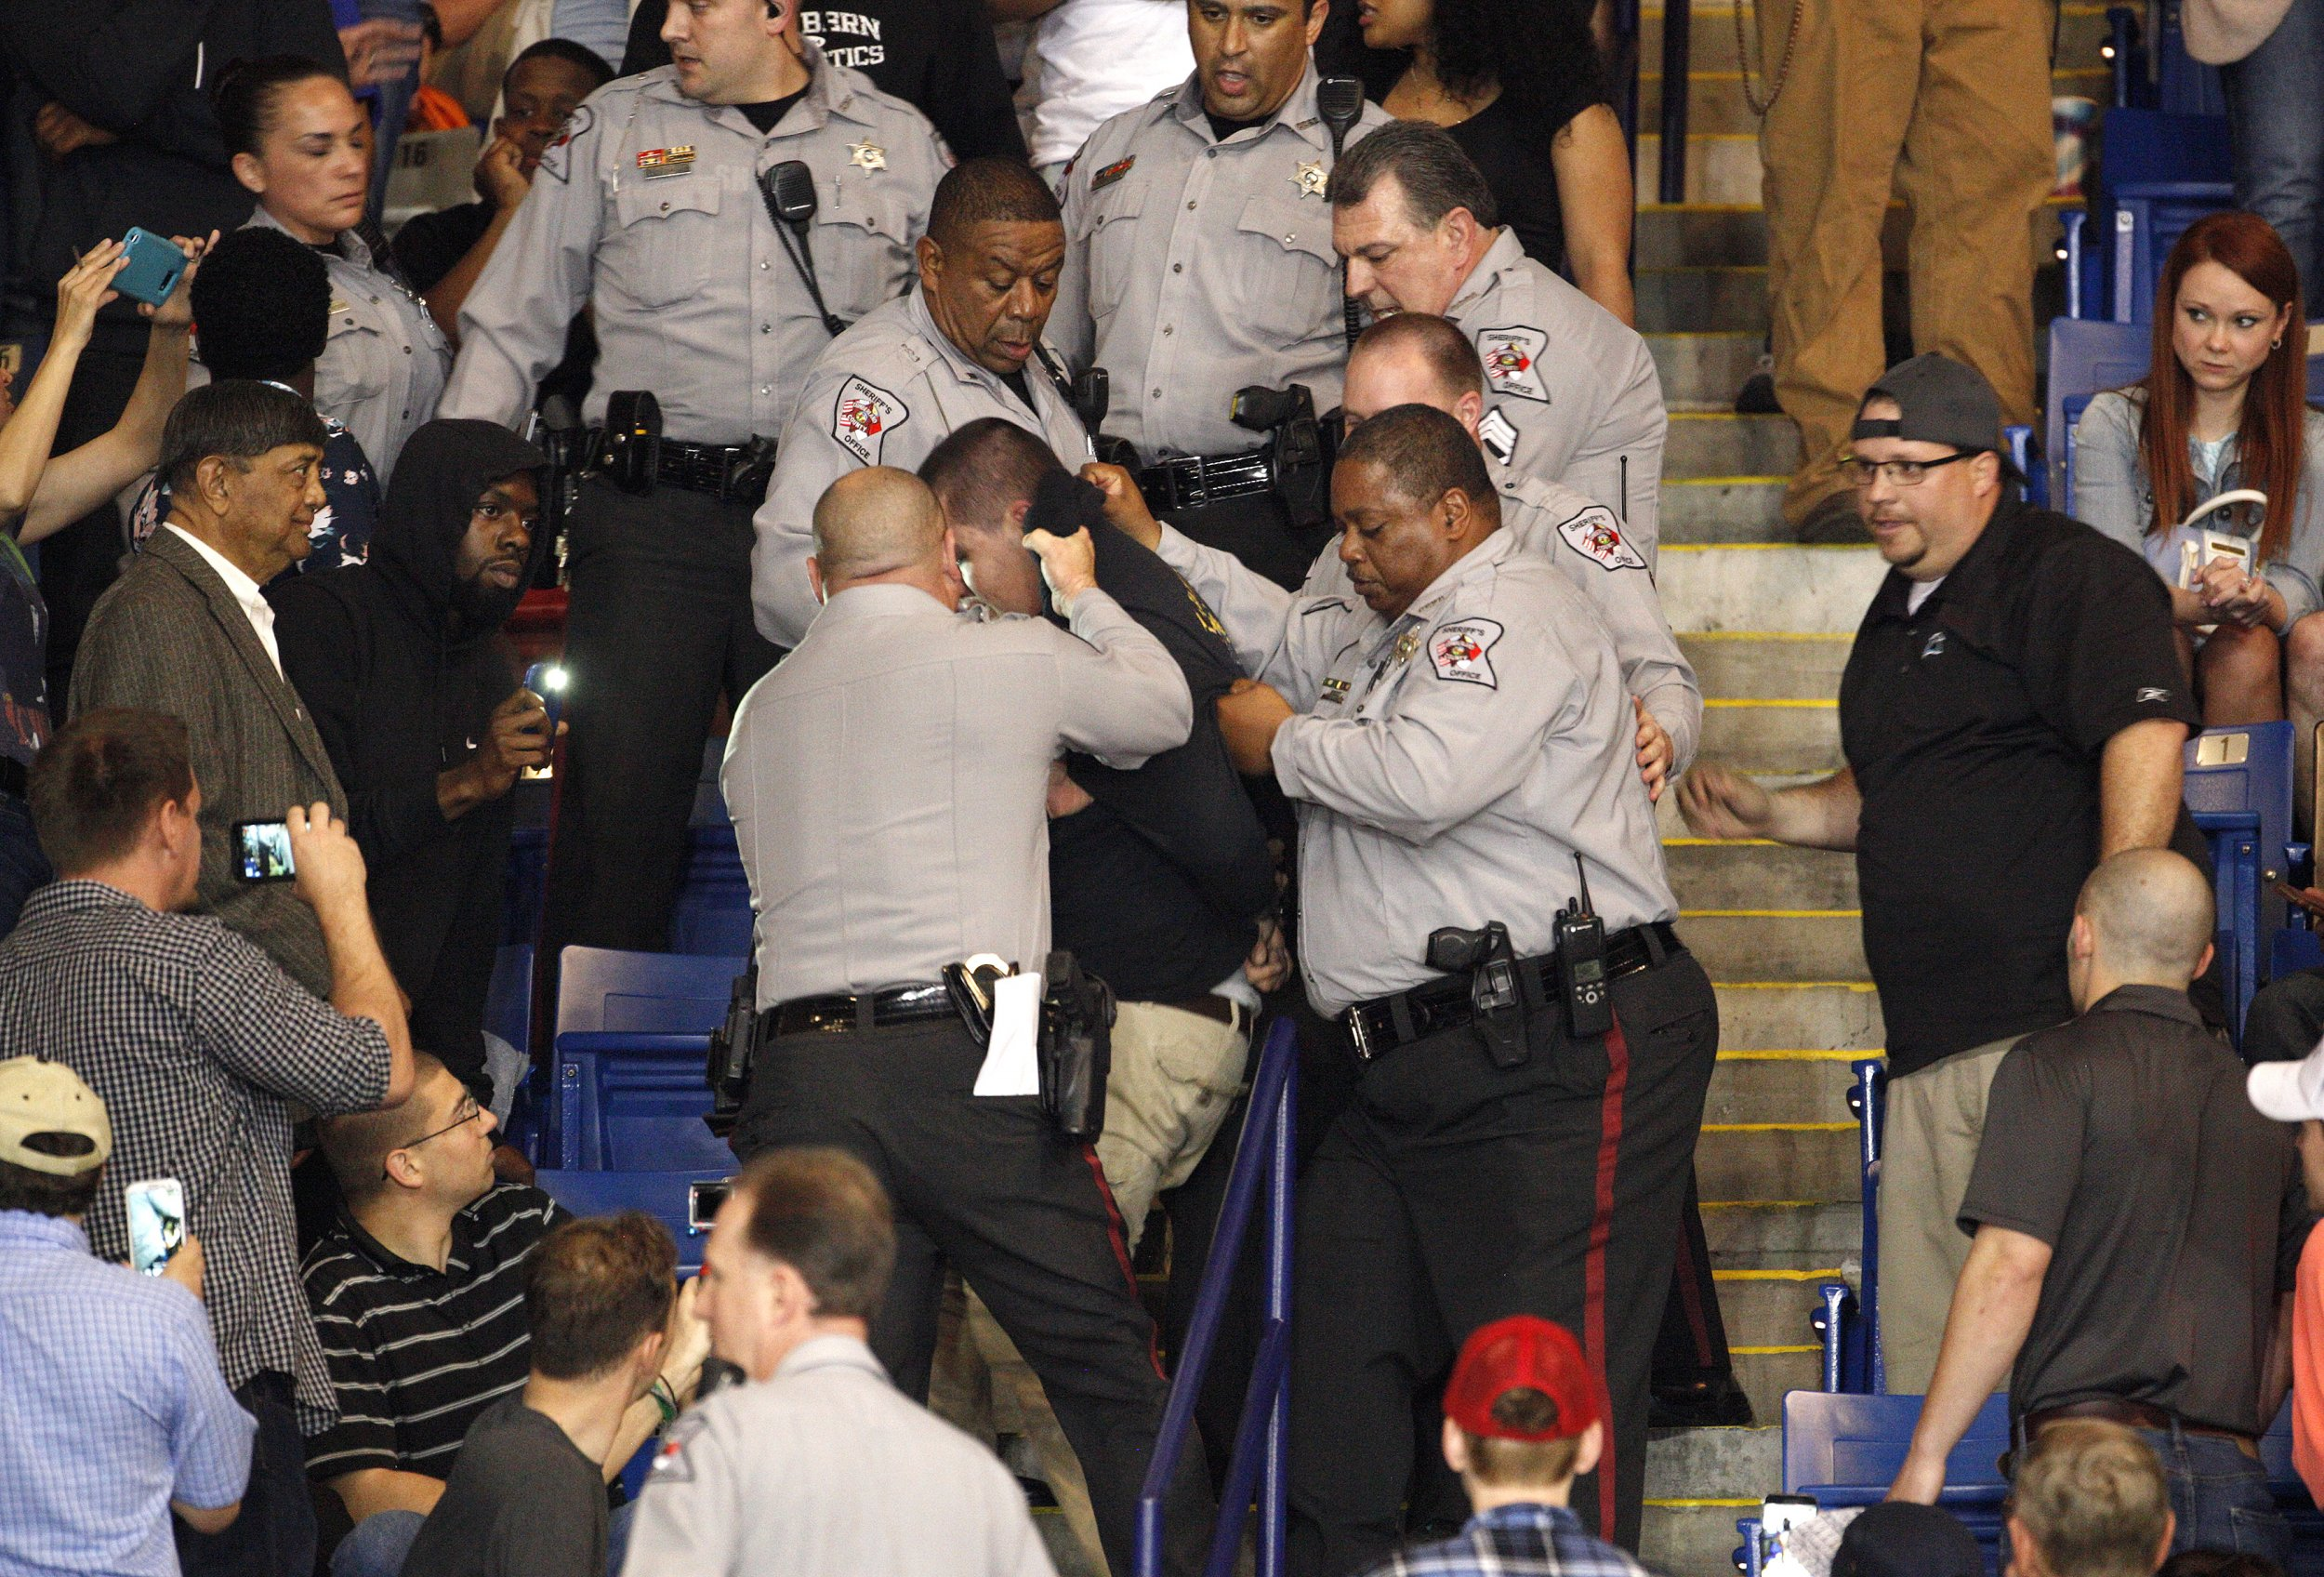 03_10_Trump_Rally_Protester_Arrested_Assault